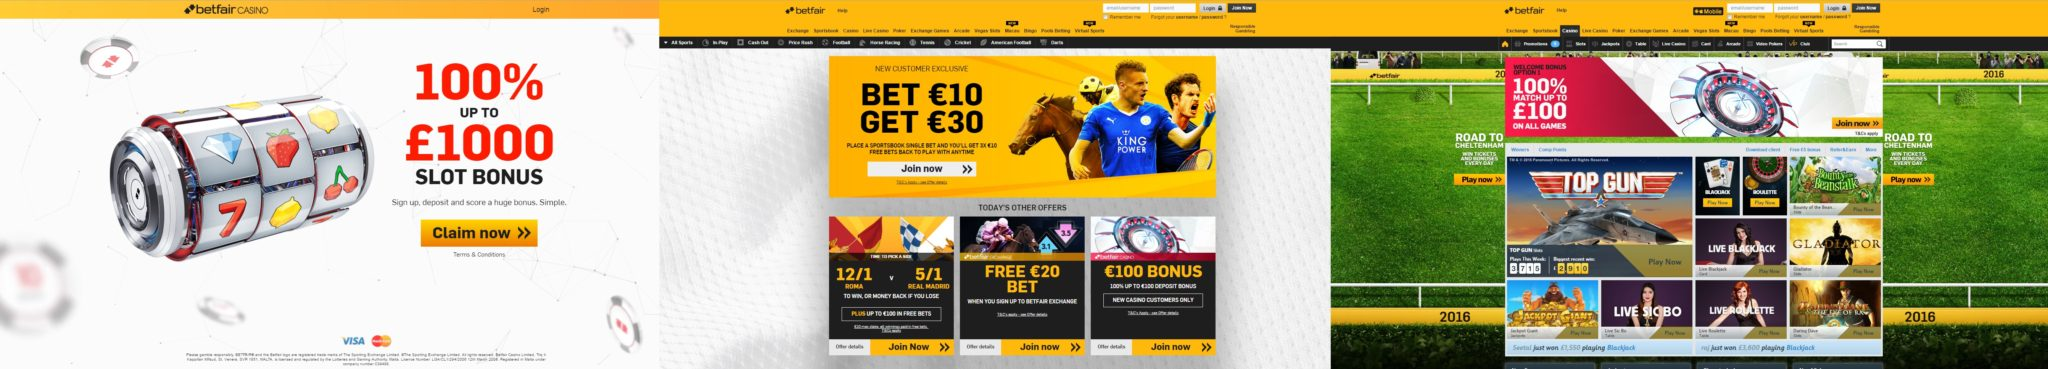 betfair screens